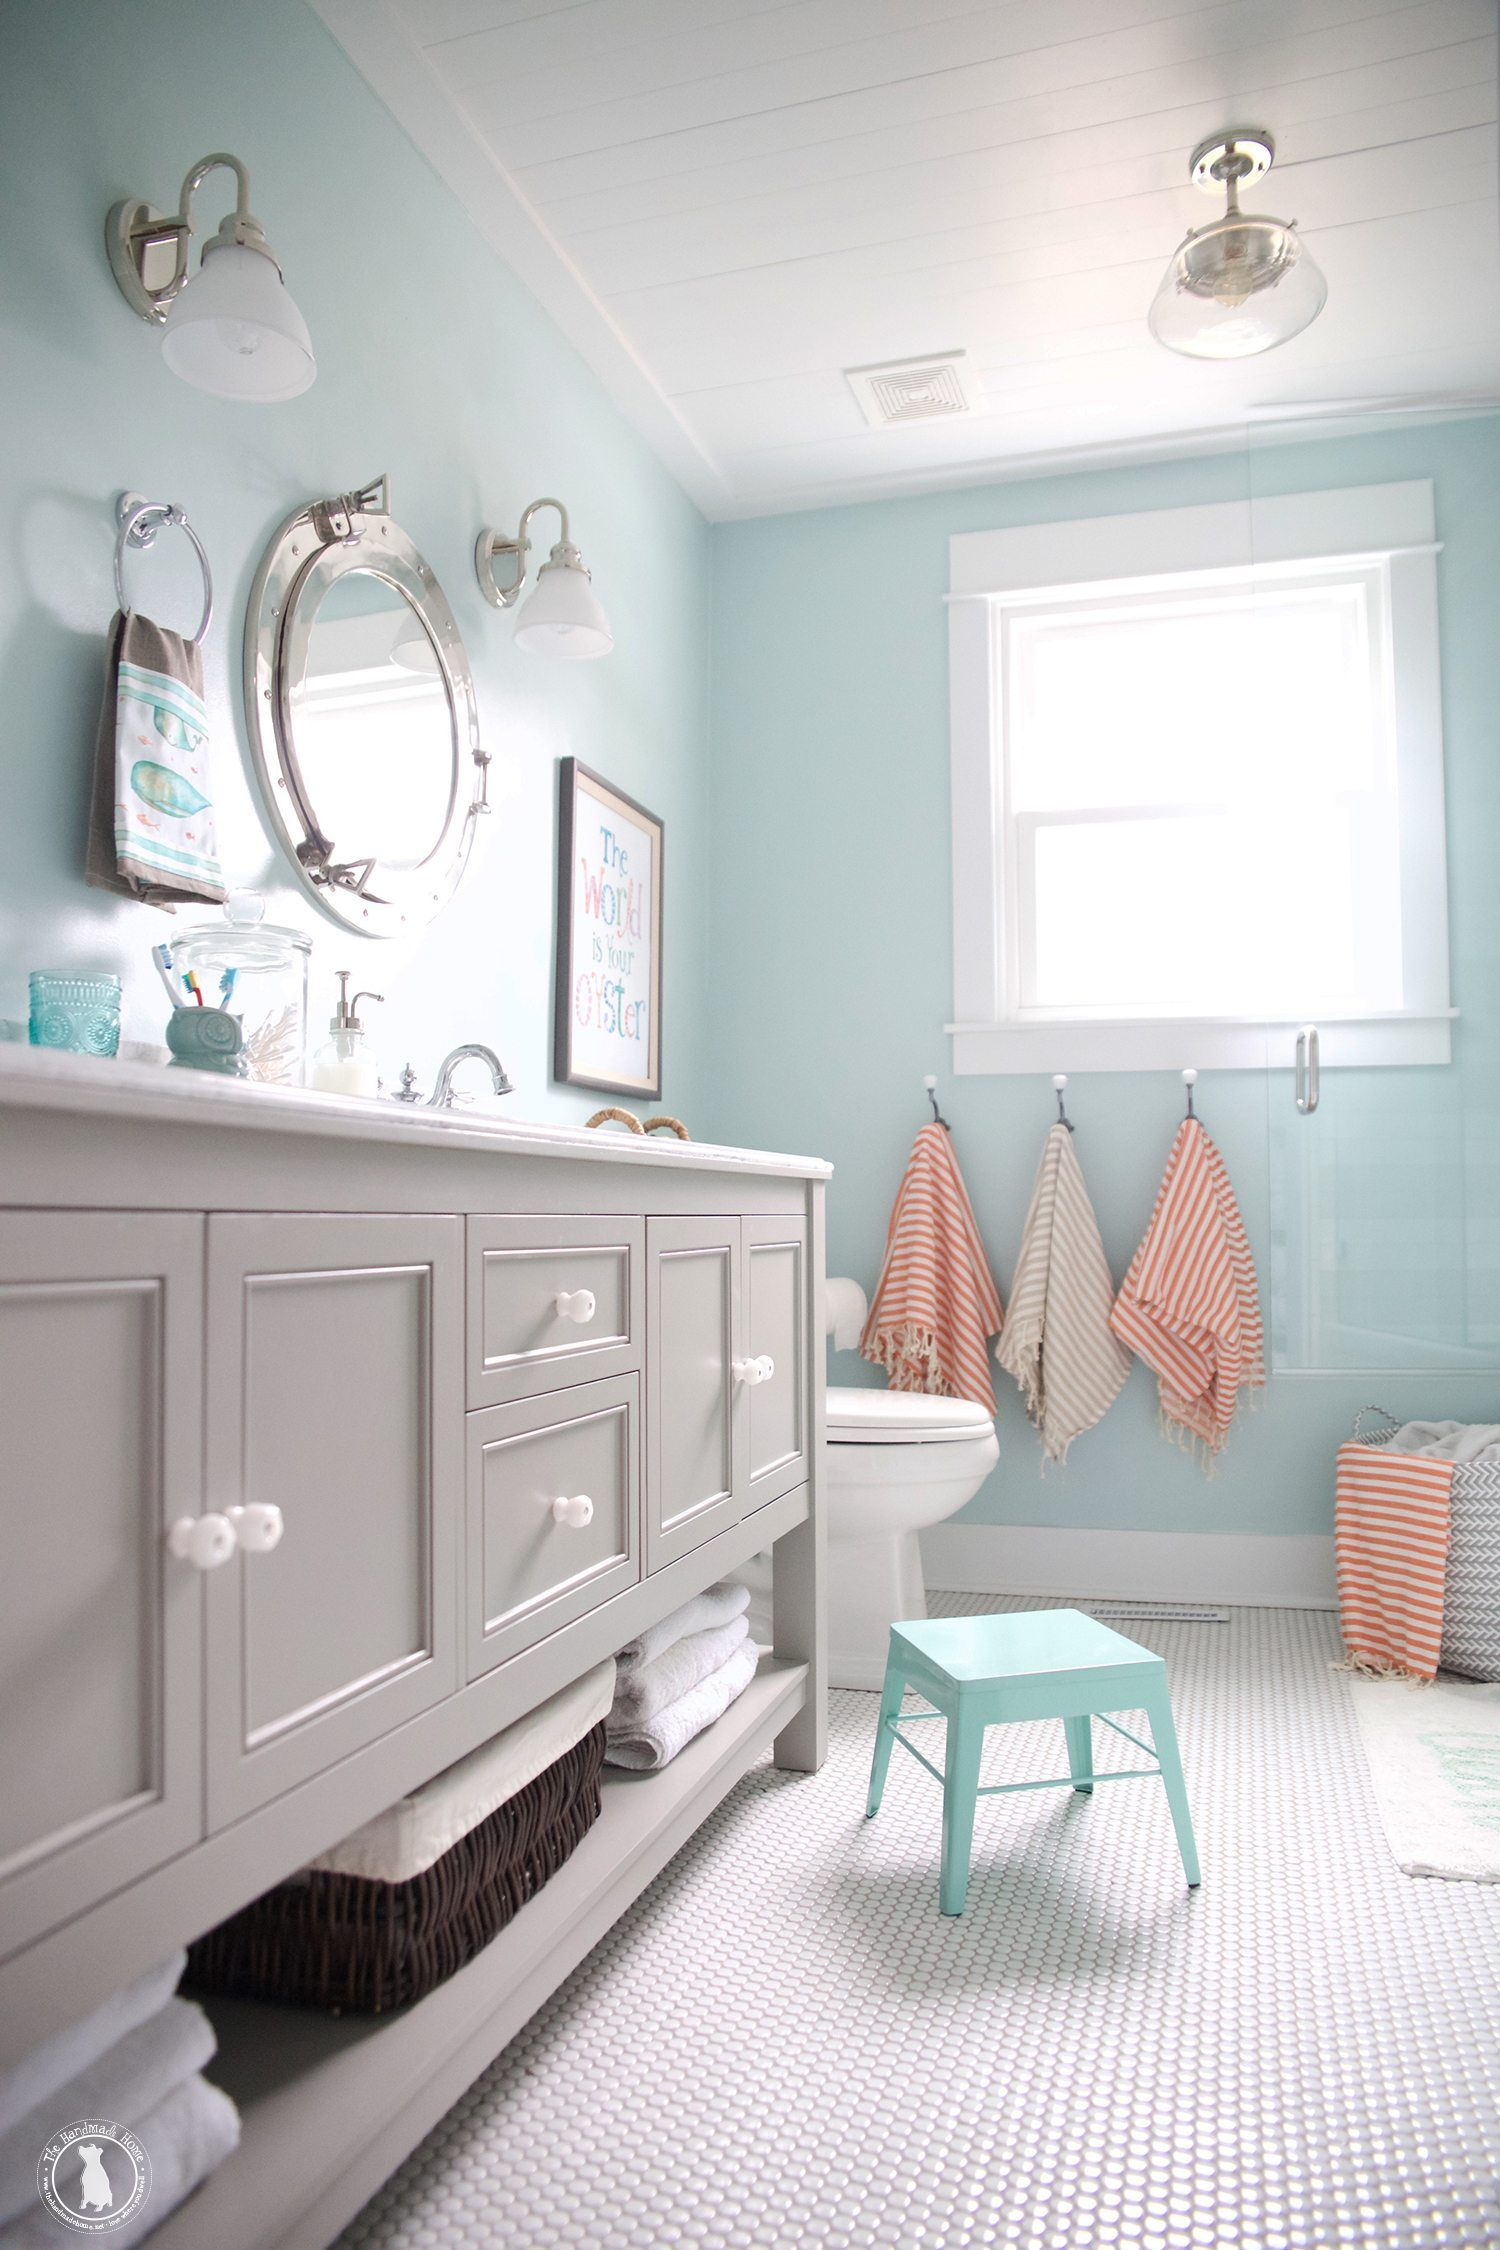 How To Shiplap Your Ceilings The Handmade Home Shiplap